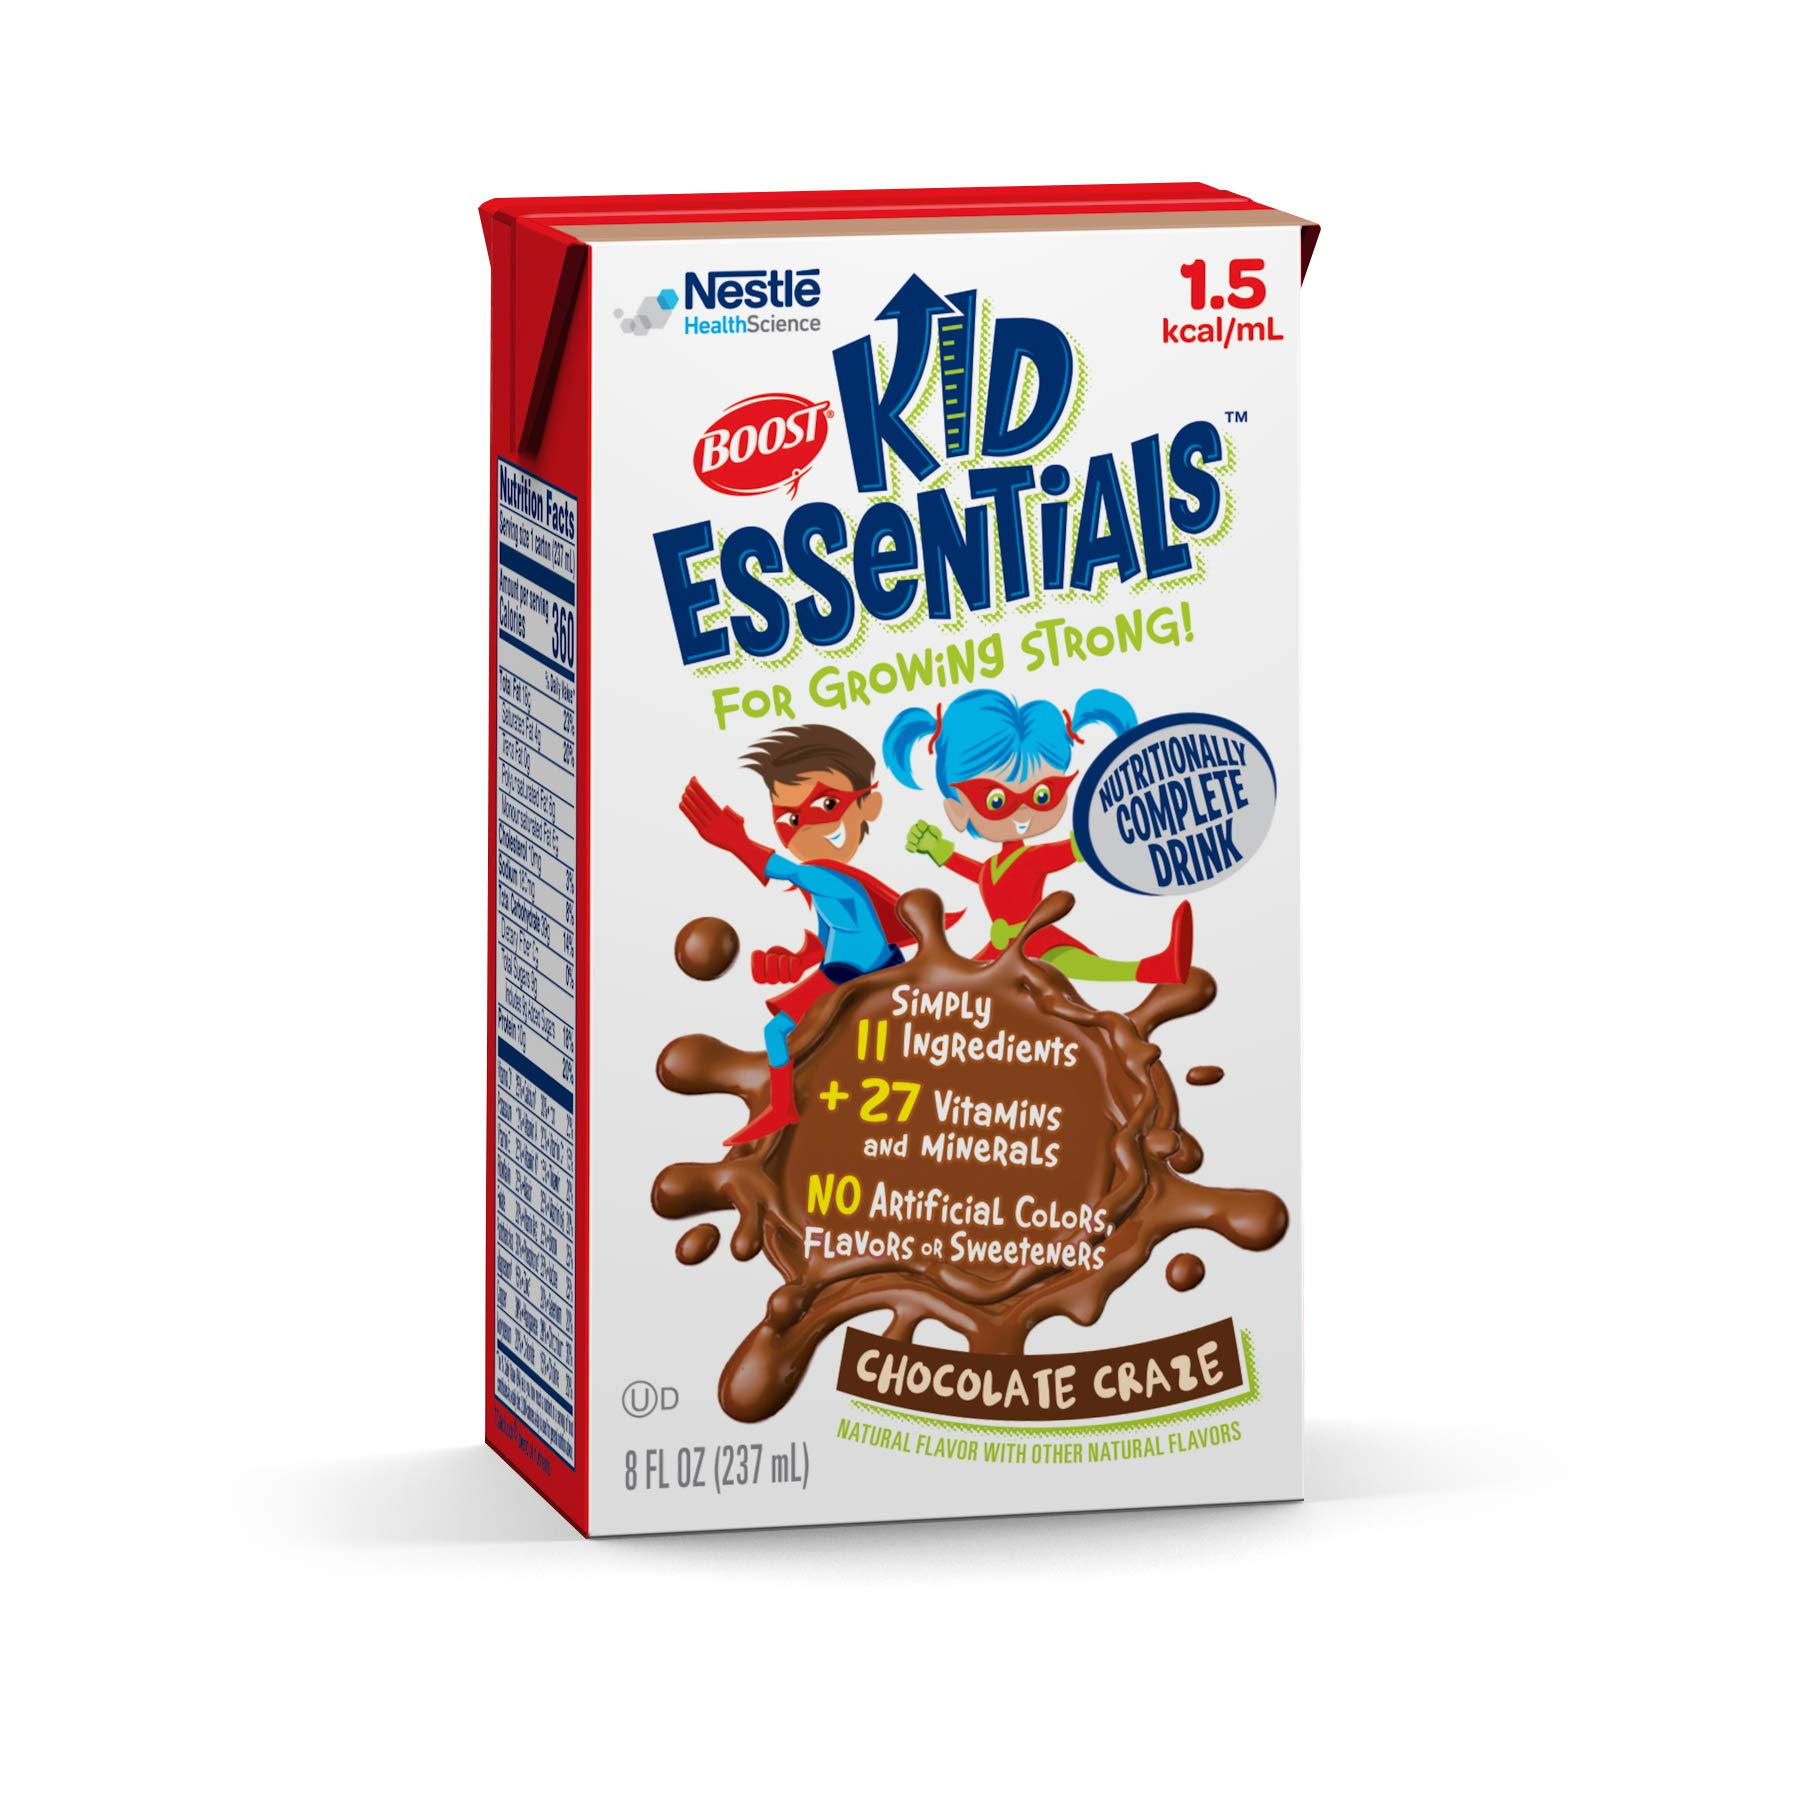 Boost Kid Essentials 1.5 Nutritionally Complete Drink, Chocolate Craze, 8 Ounce, Pack of 27 by Boost Kids Essentials